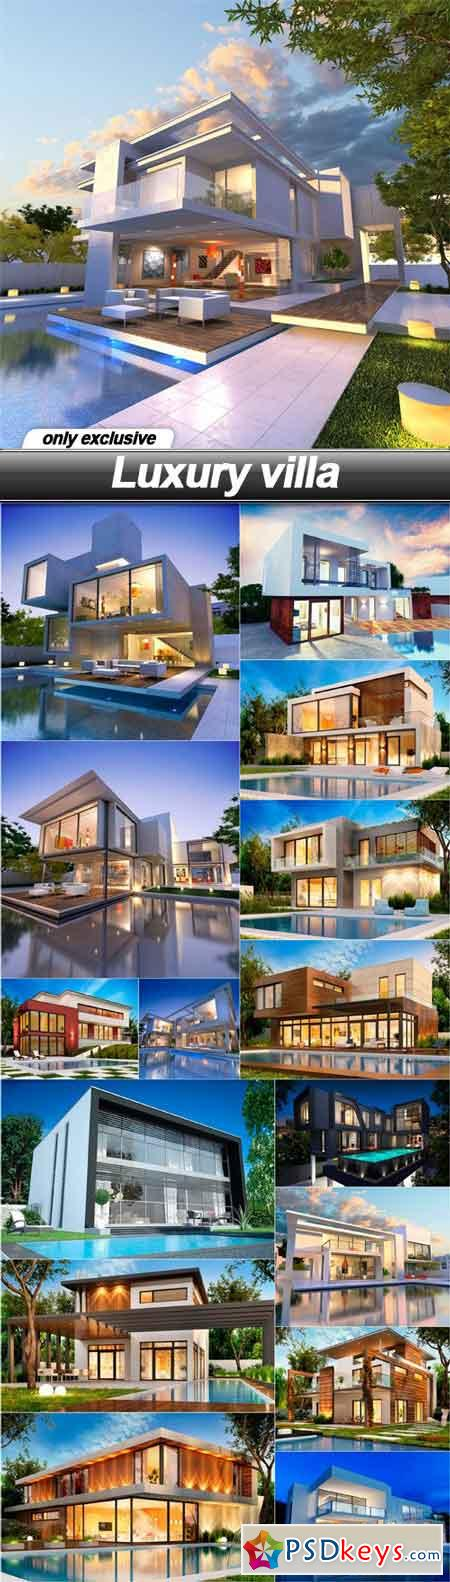 Luxury villa - 16 UHQ JPEG